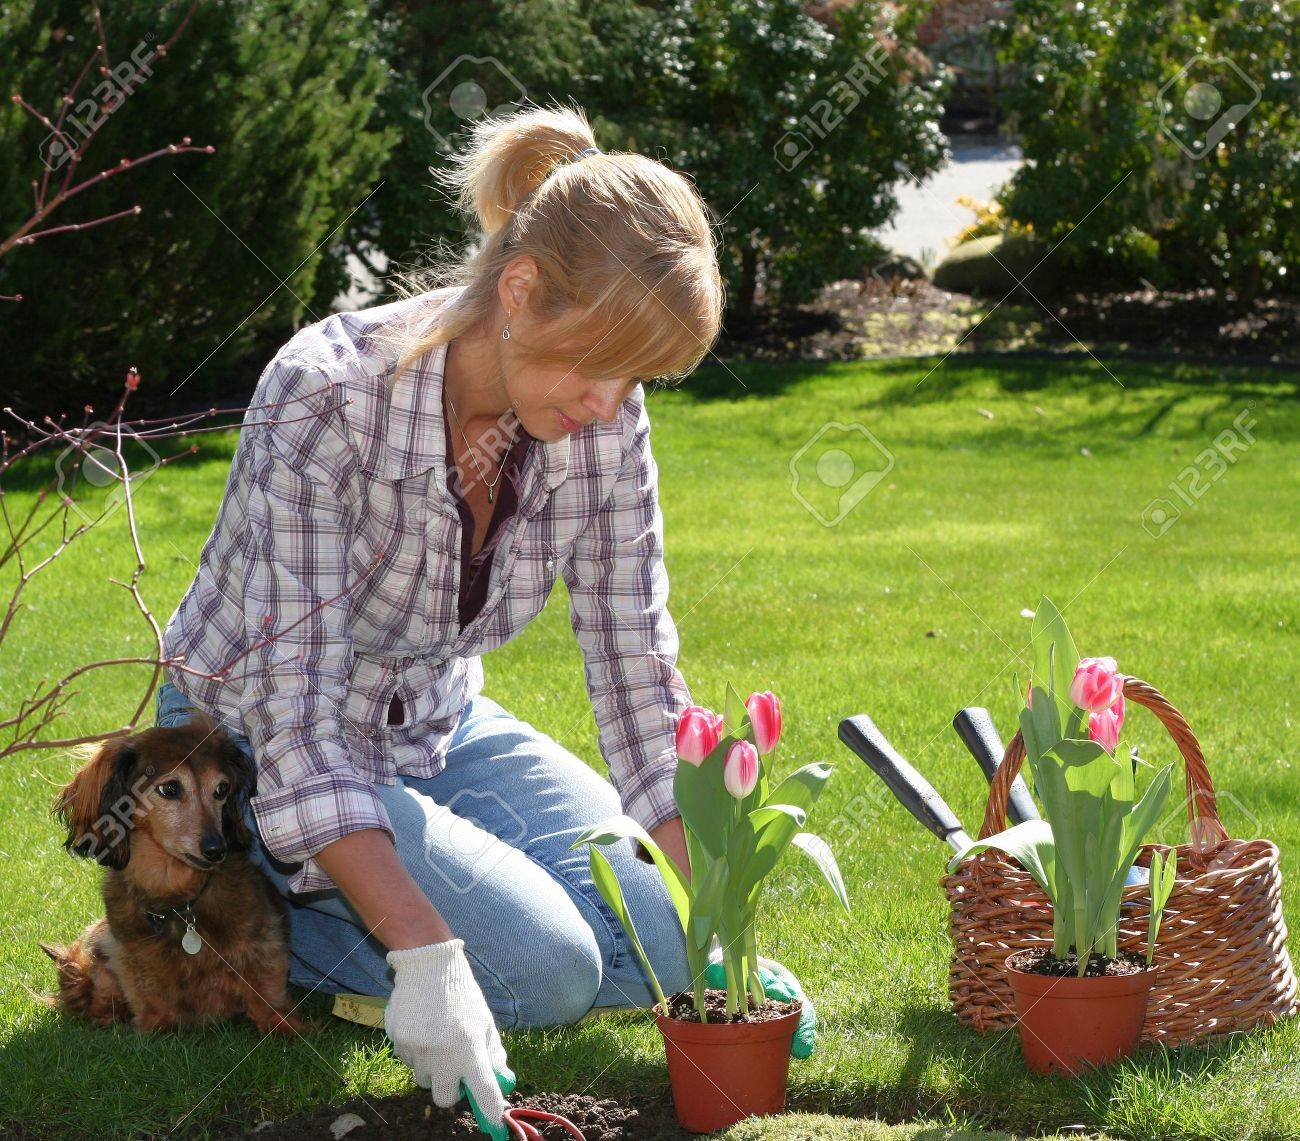 Garden Design With Pretty Blond Woman Enjoying Gardening Outside In Spring.  Stock With How To